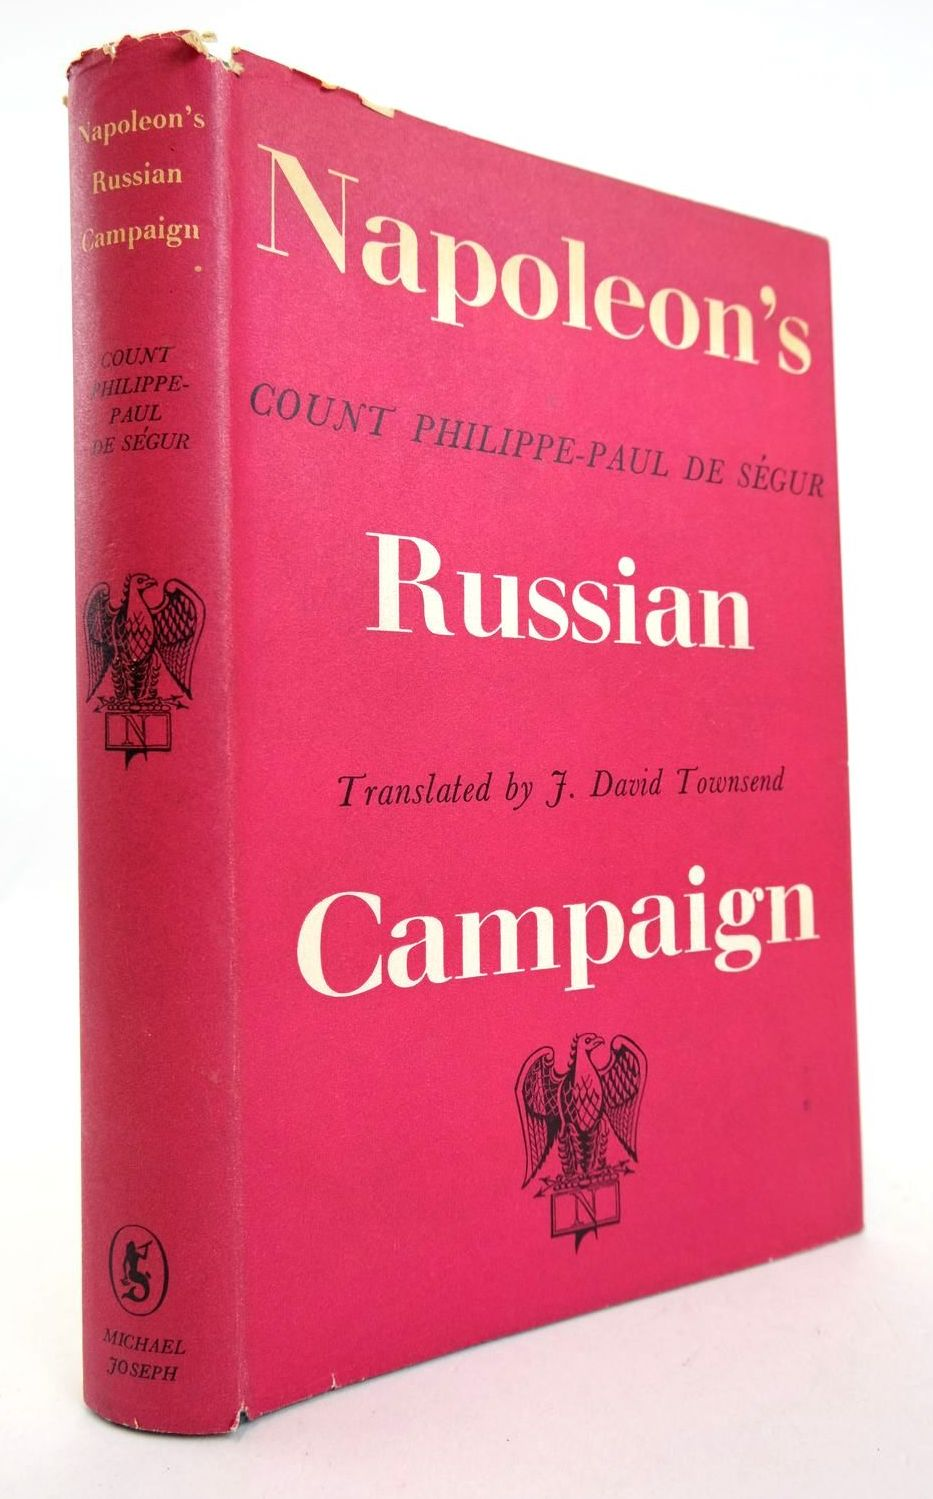 Photo of NAPOLEON'S RUSSIAN CAMPAIGN written by De Segur, Philippe-Paul Townsend, J. David published by Michael Joseph (STOCK CODE: 2132774)  for sale by Stella & Rose's Books